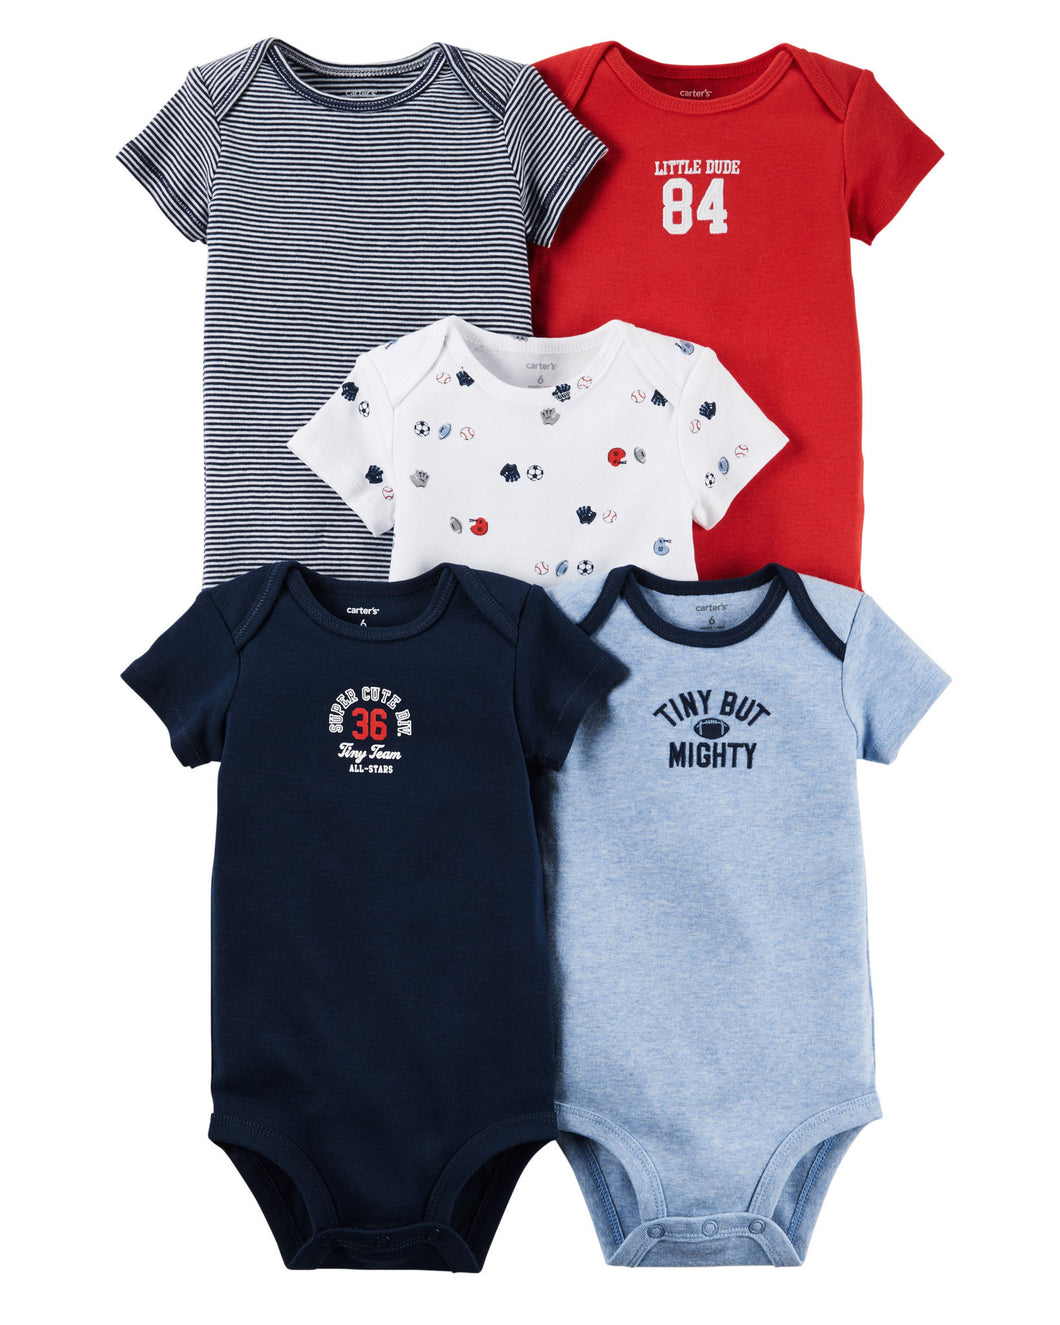 Carters 'Tiny But Naughty' 0-12 mos